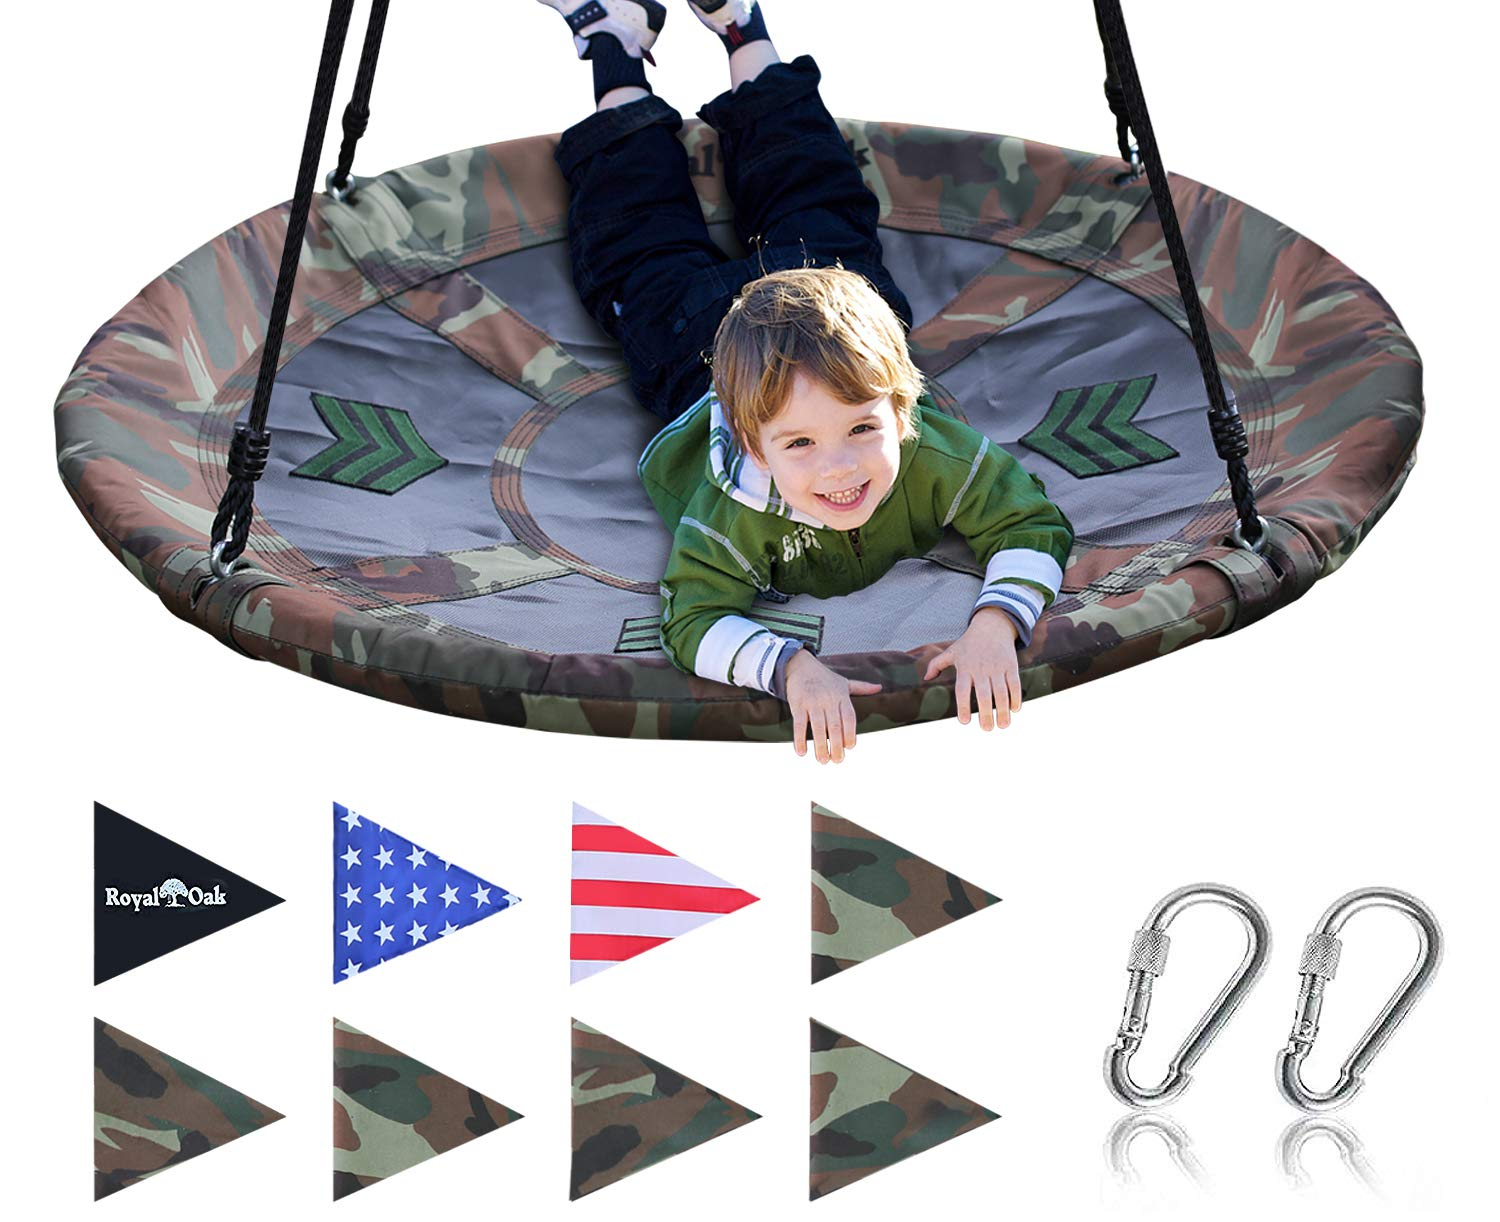 Royal Oak Giant 40 Inch Flying Saucer Tree Swing, Bonus Protective Swing Cover and Flags, 700 lb Weight Capacity, Easy Install, Steel Frame by Royal Oak